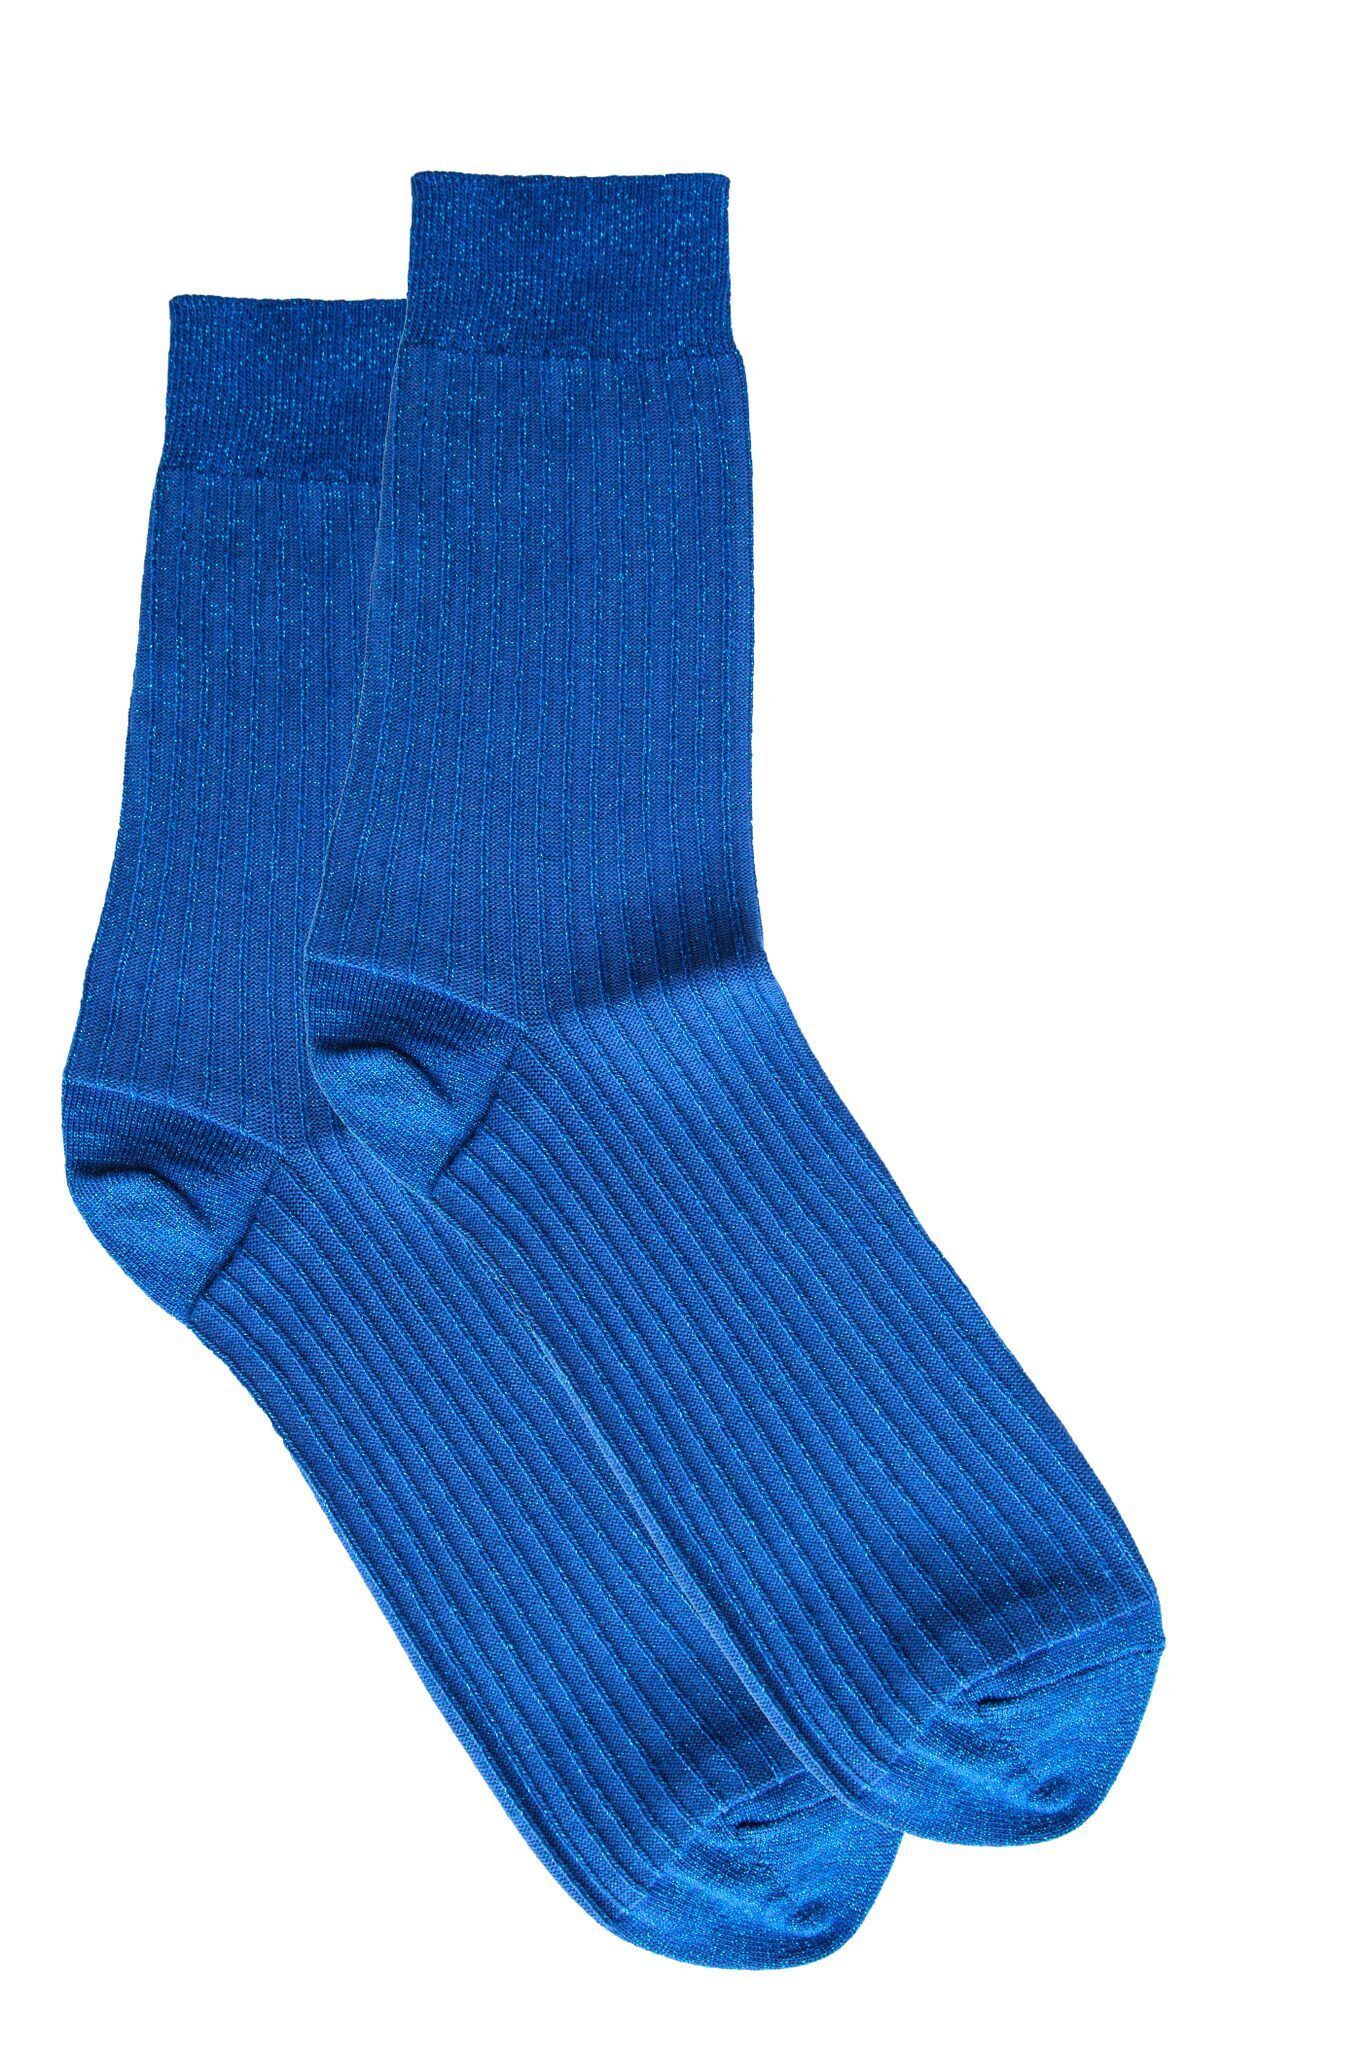 Kim Sock Cobalt Blue Sock MP Crafted Garments - der ZEITGEIST